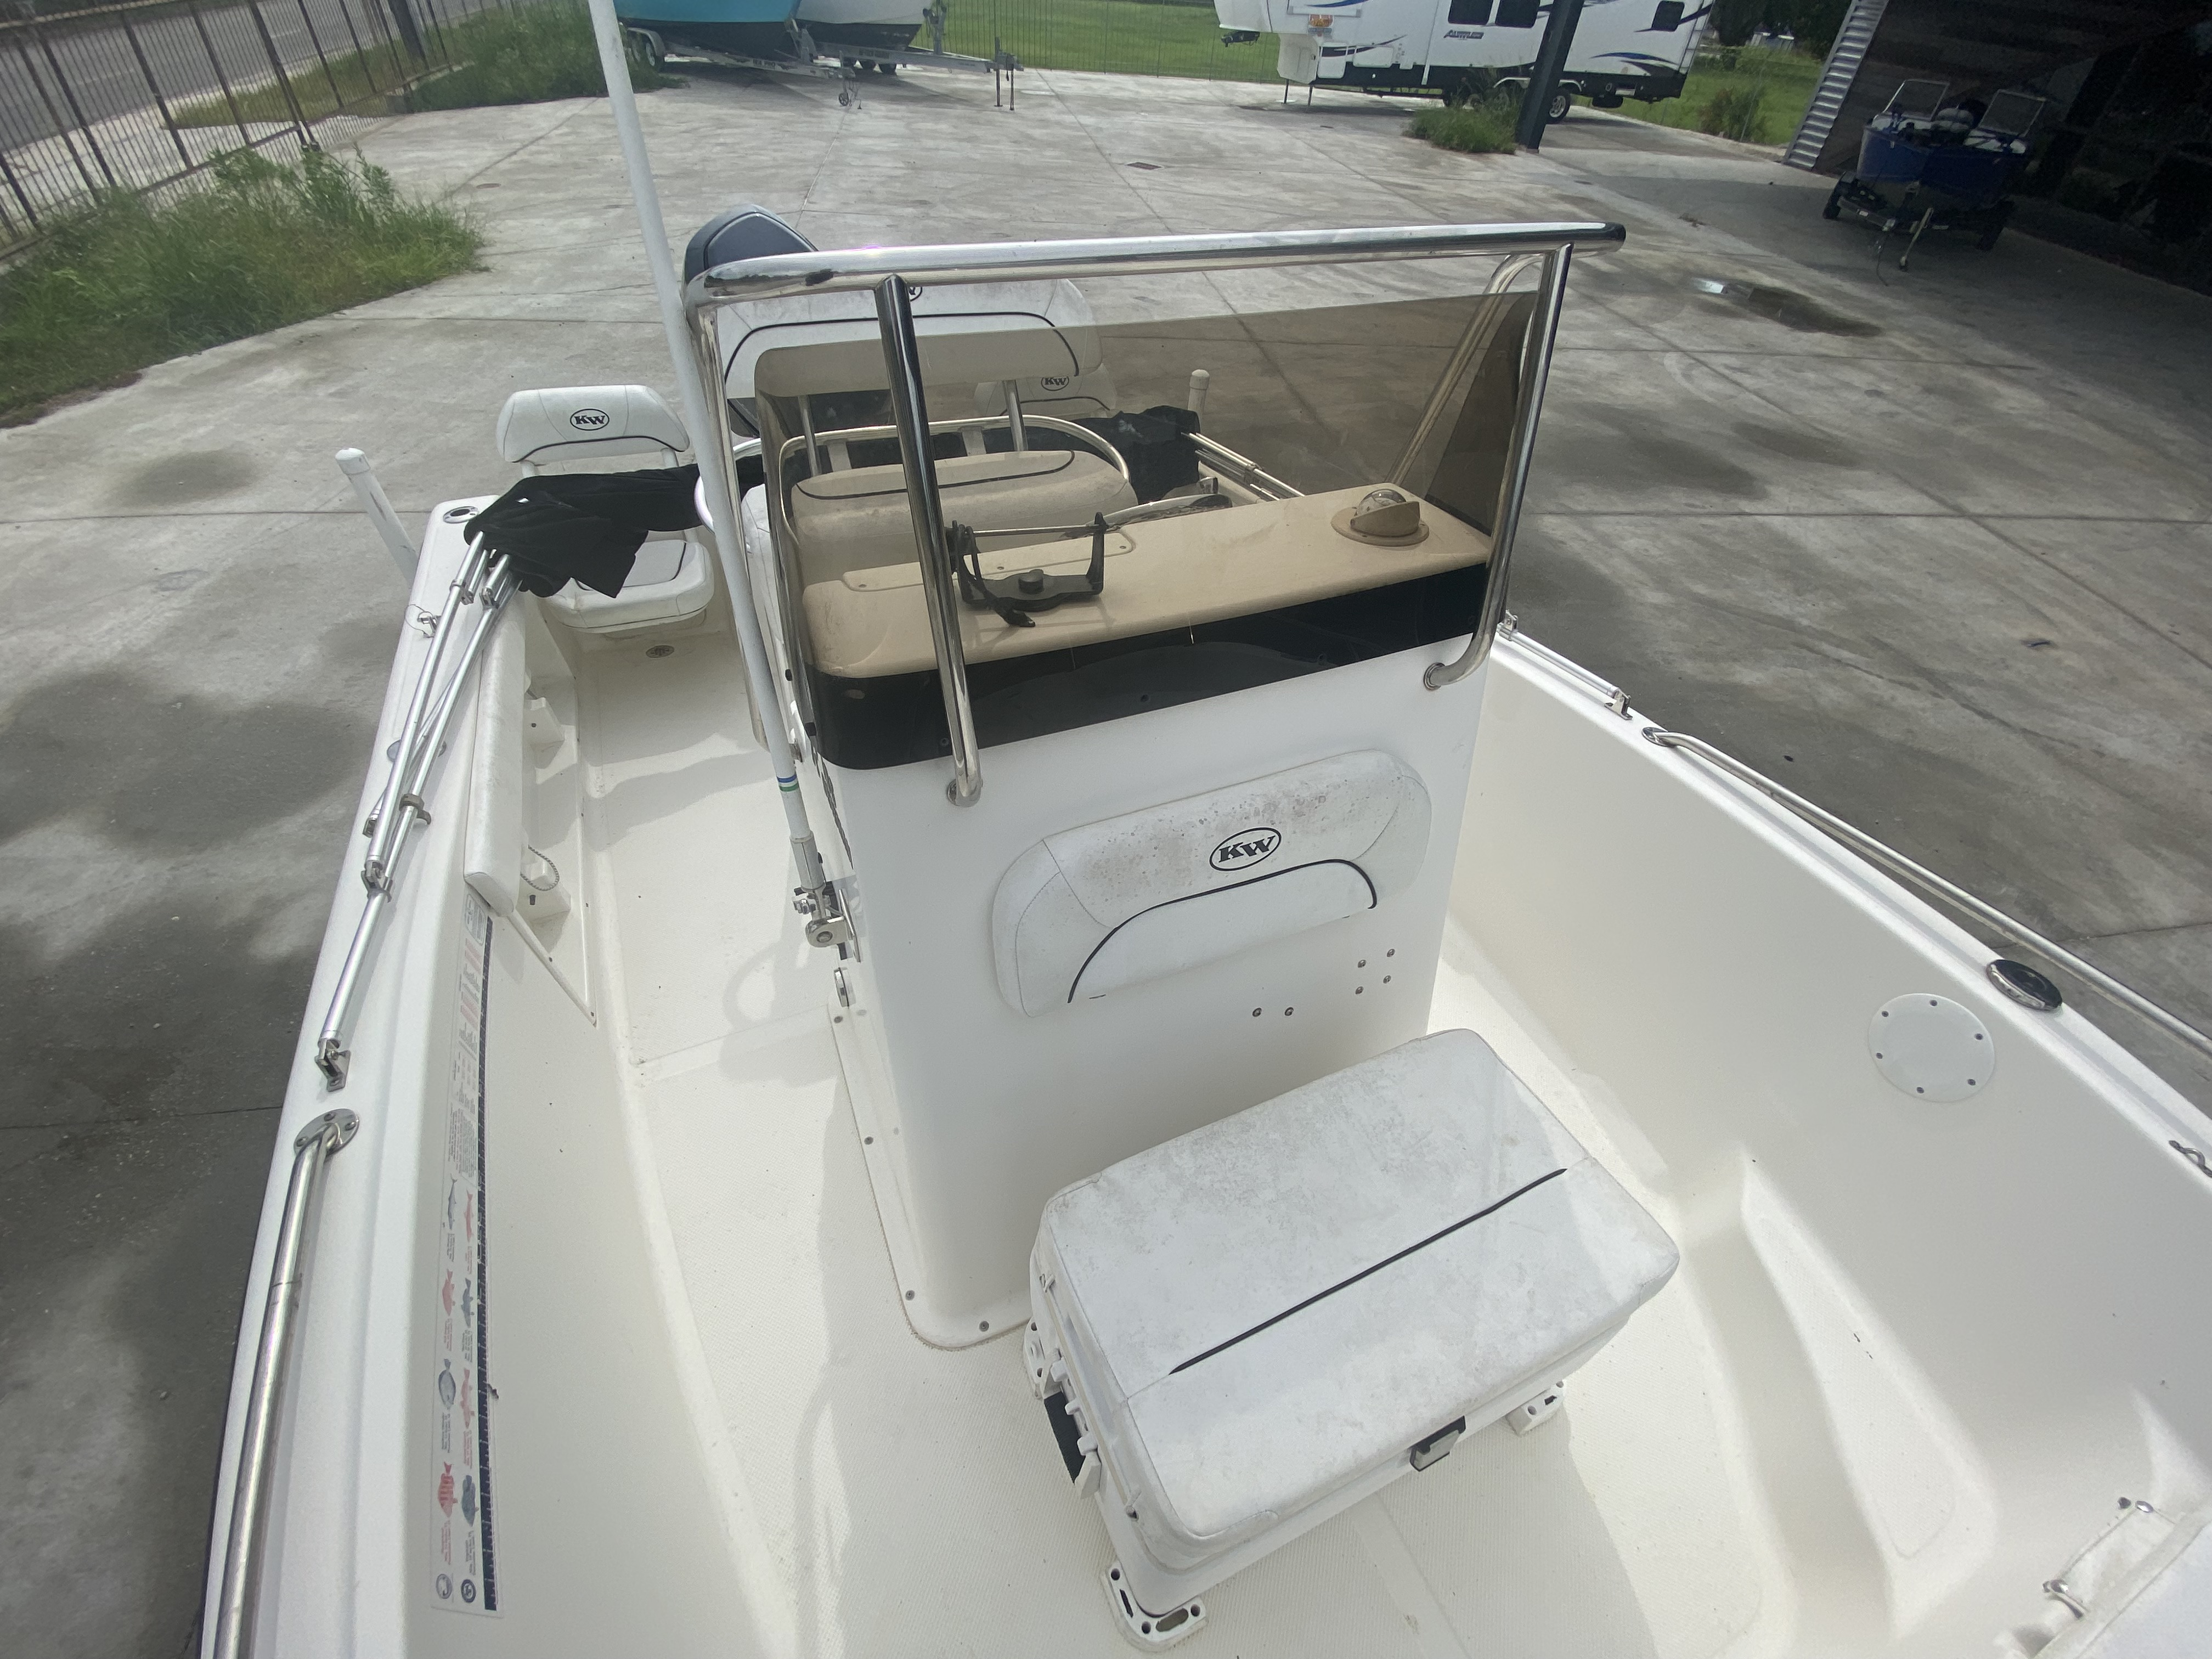 2013 Key West boat for sale, model of the boat is 186 Sportsman & Image # 6 of 12